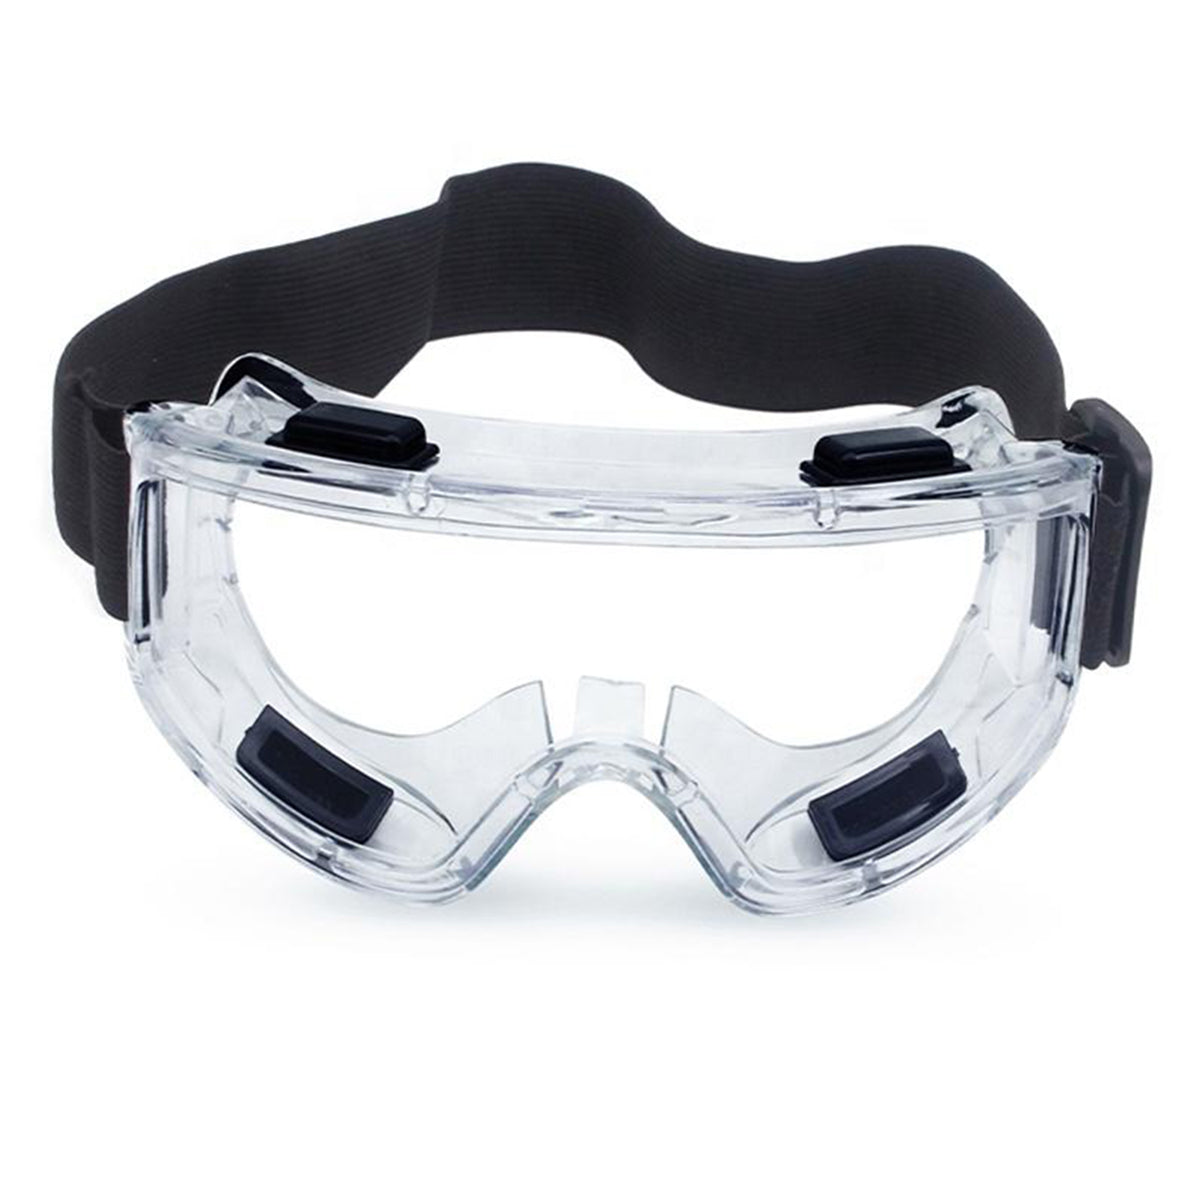 Front facing product image of Retsing ski goggle style-safety goggles.